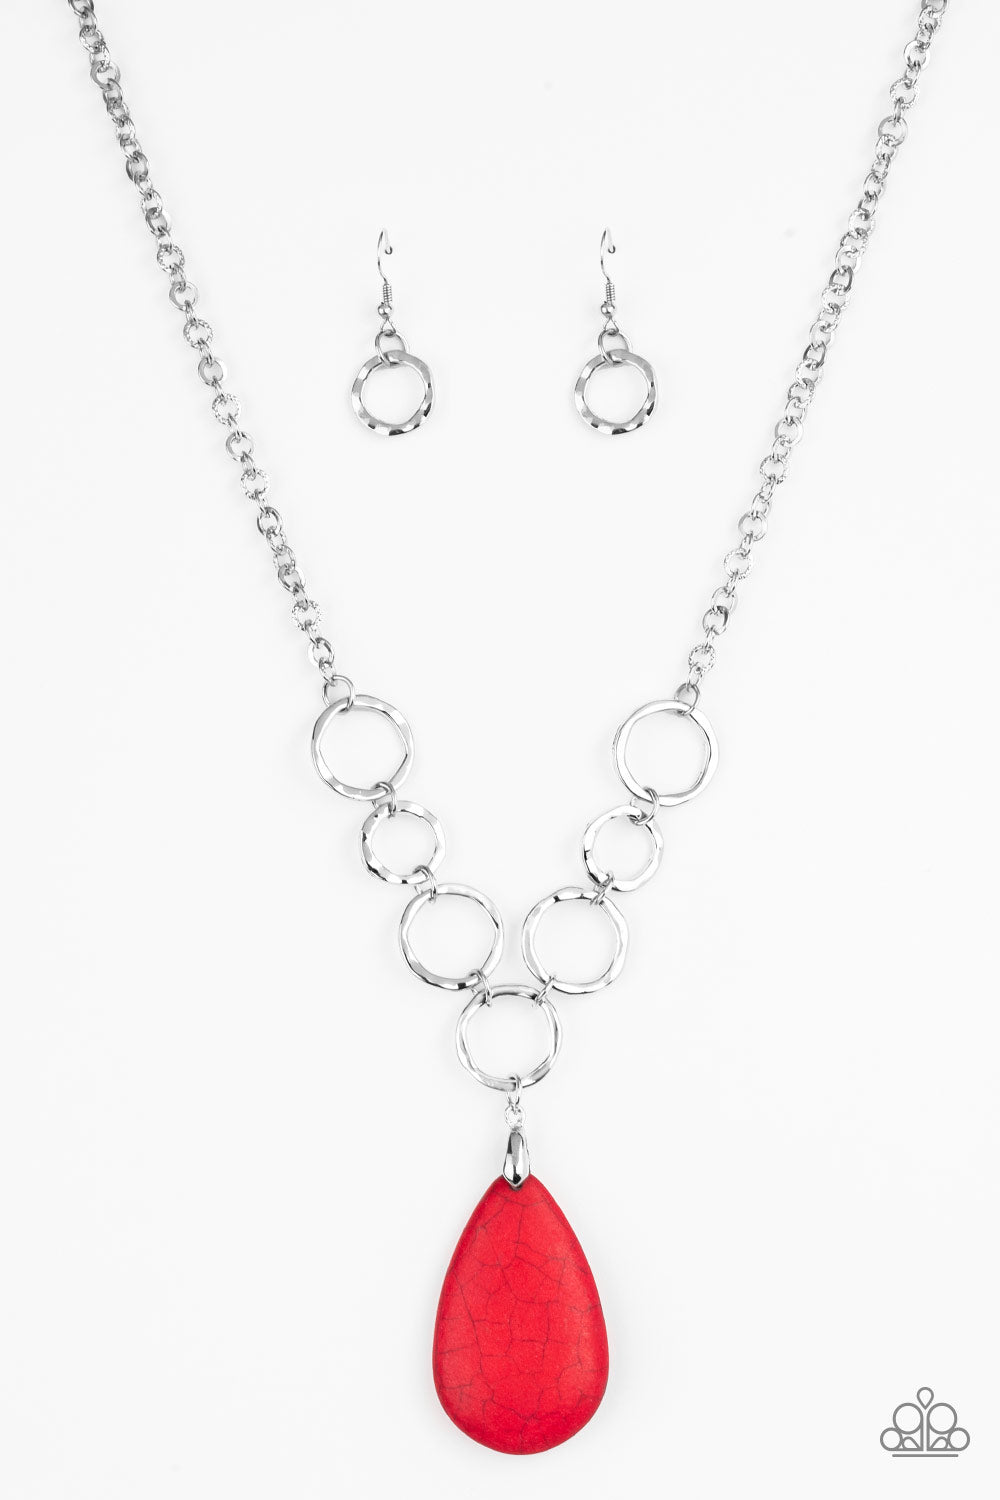 Paparazzi Accessories - Livin On A PRAIRIE - Red Necklace Set - JMJ Jewelry Collection